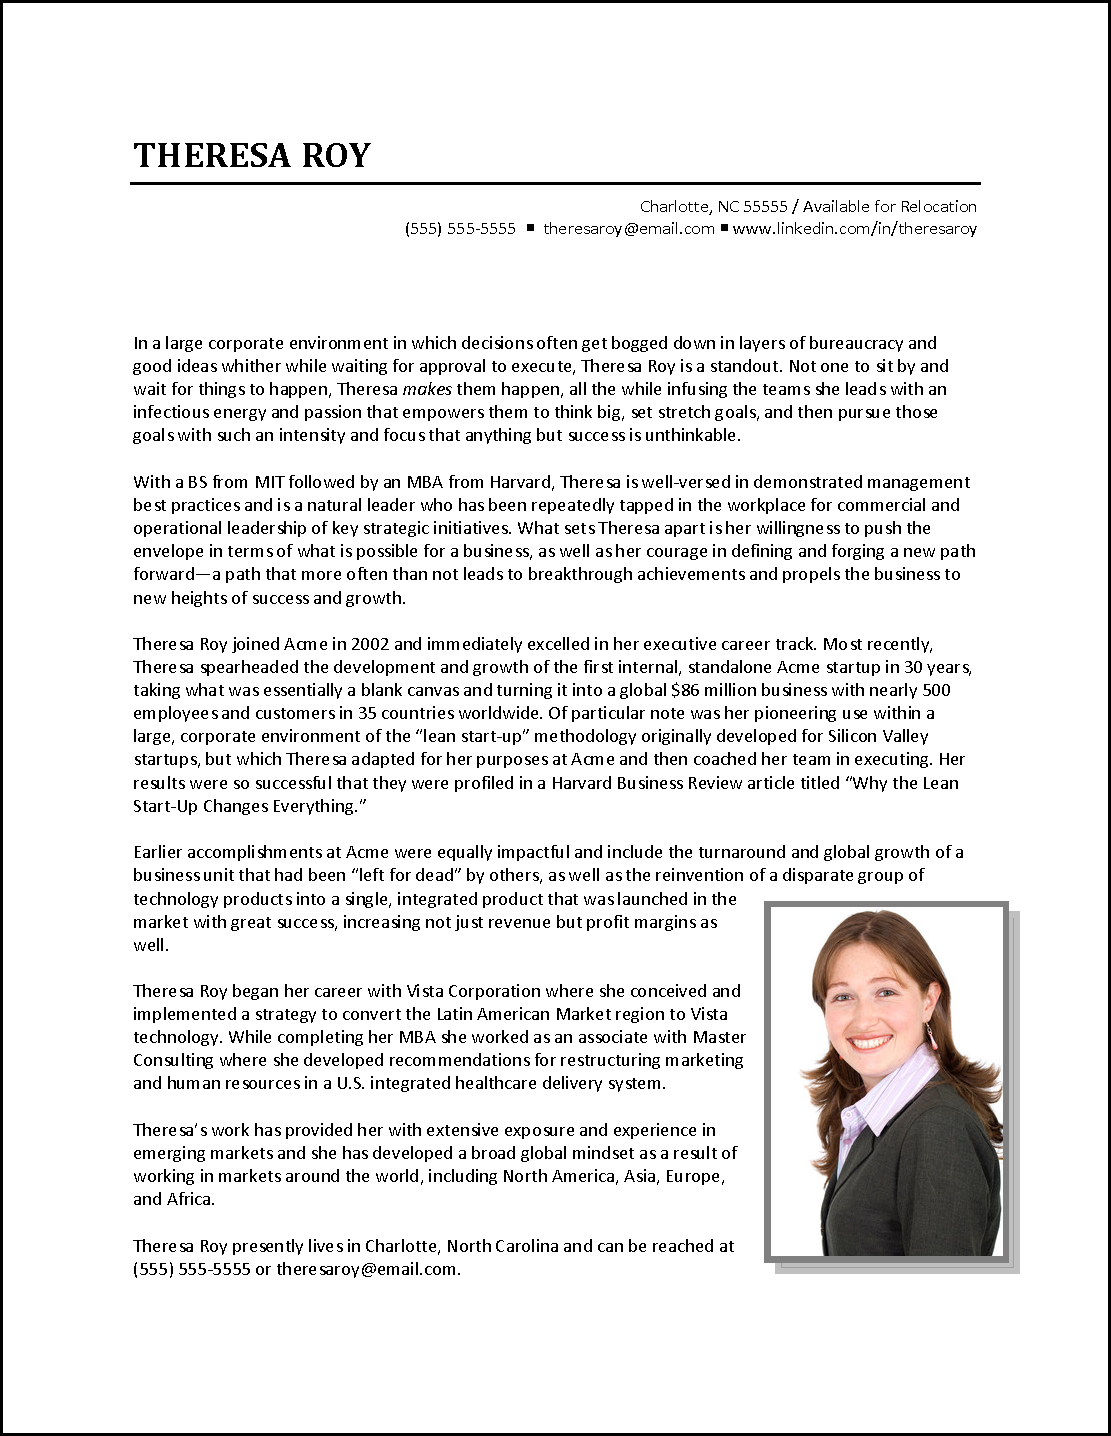 employee biography template - executive biography example business development